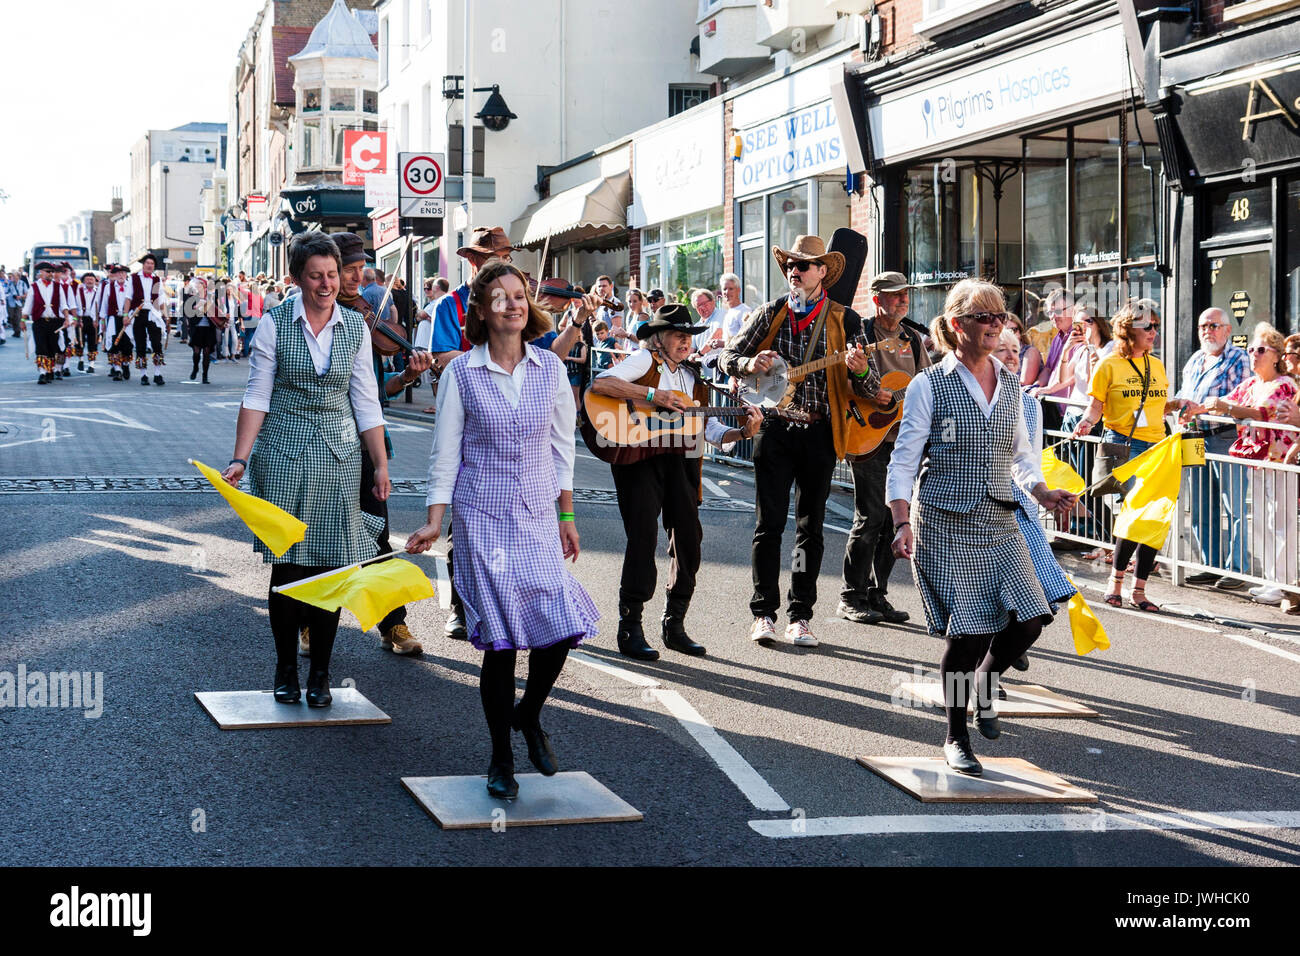 Broadstairs Folk week festival parade. Tap and Sync womens Morris dancers dancing in the High street  while waving yellow hankies.Parade in background, people watching on pavement. - Stock Image